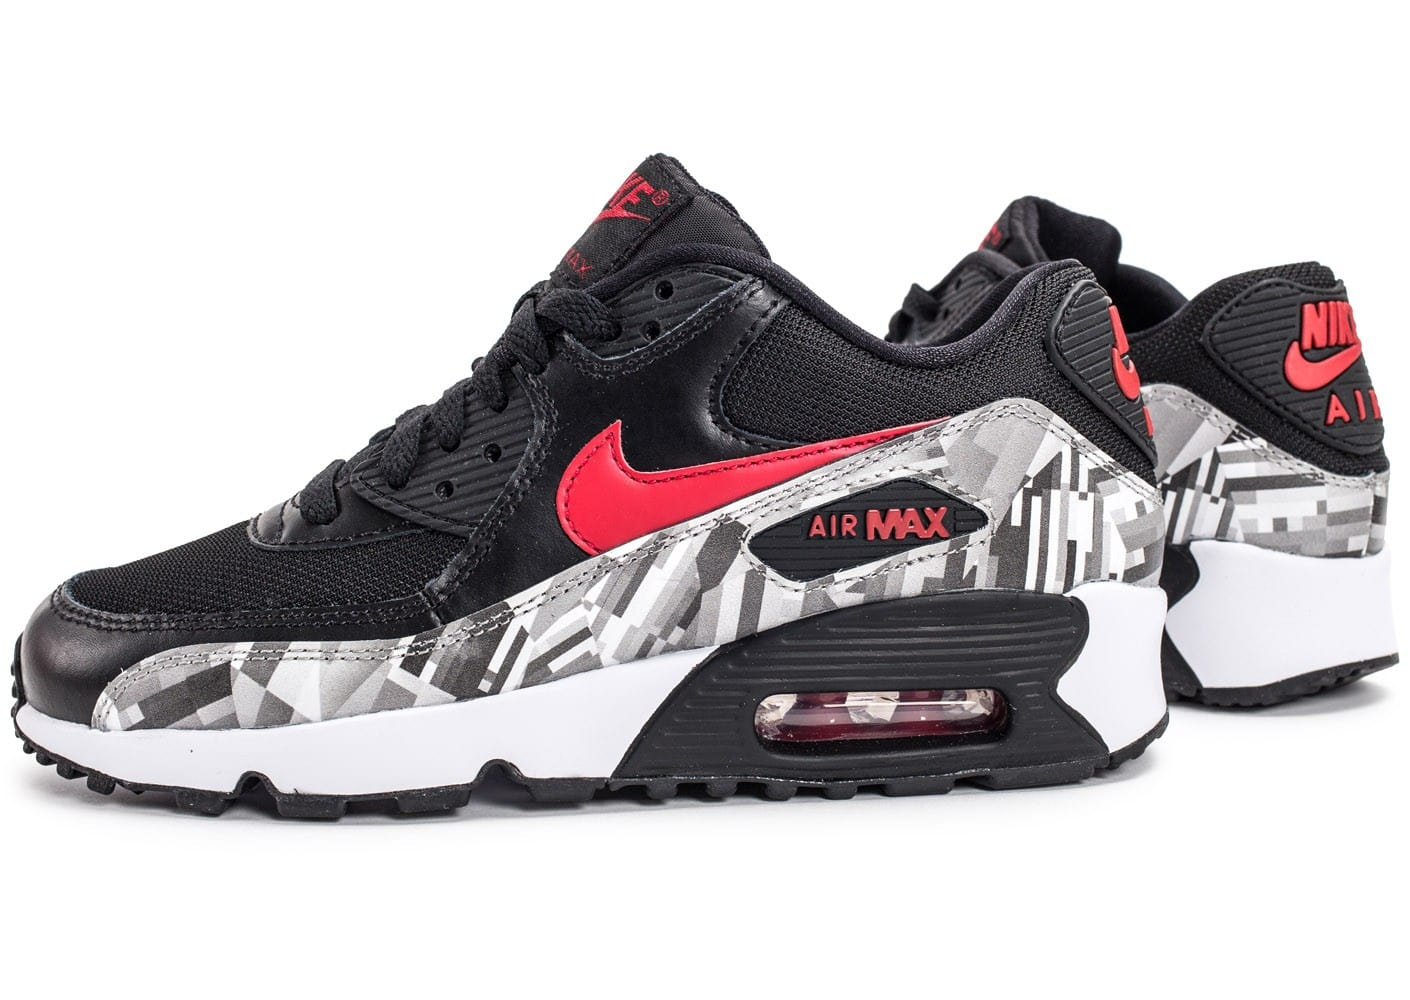 best cheap ad054 6b613 chaussures nike air max 90 print junior noir et rouge vue par paire